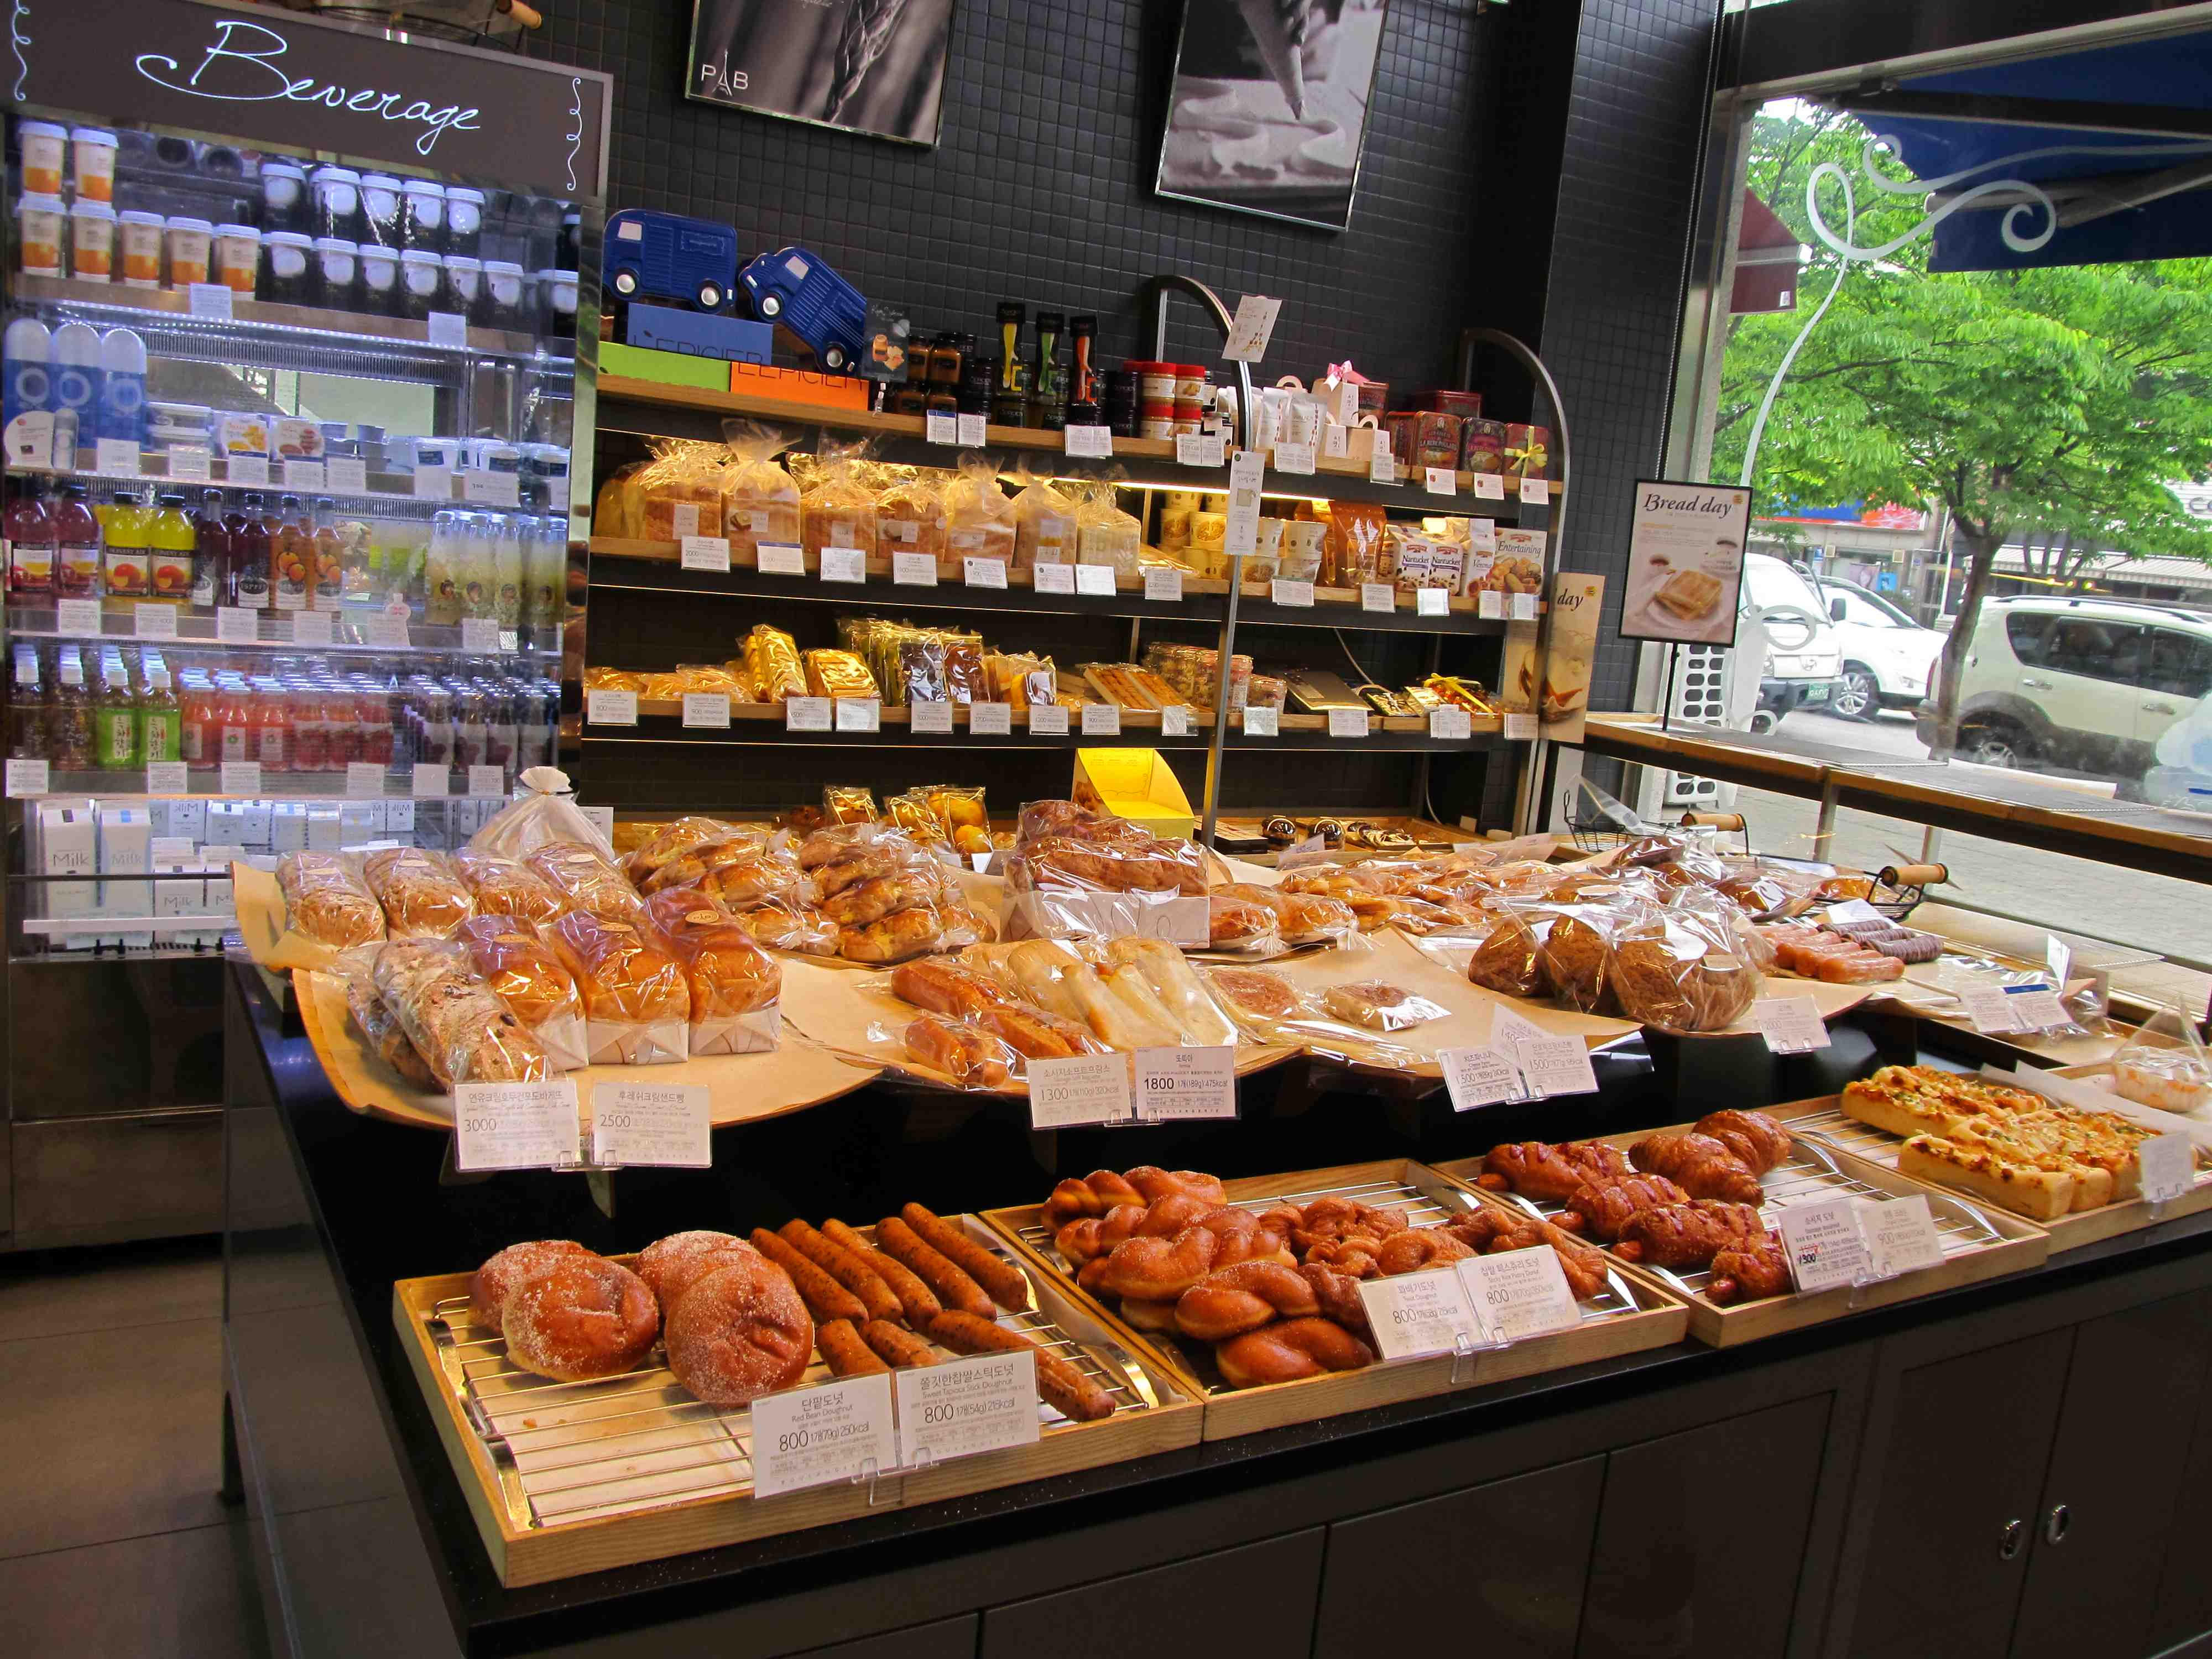 Down the street from the hotel is Paris Baguette, which serves French